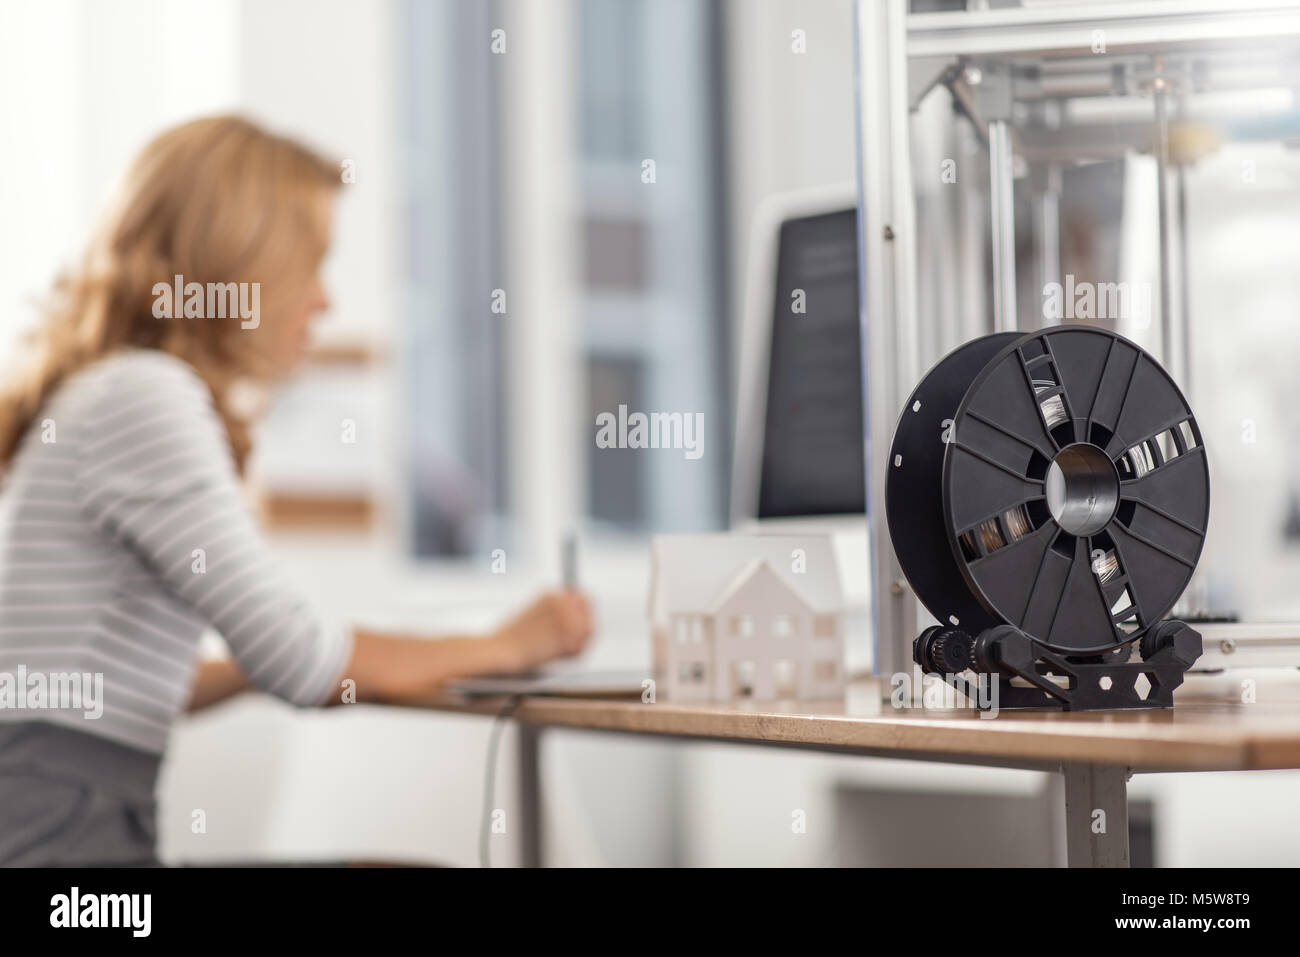 Spool with filament standing on the work desk - Stock Image